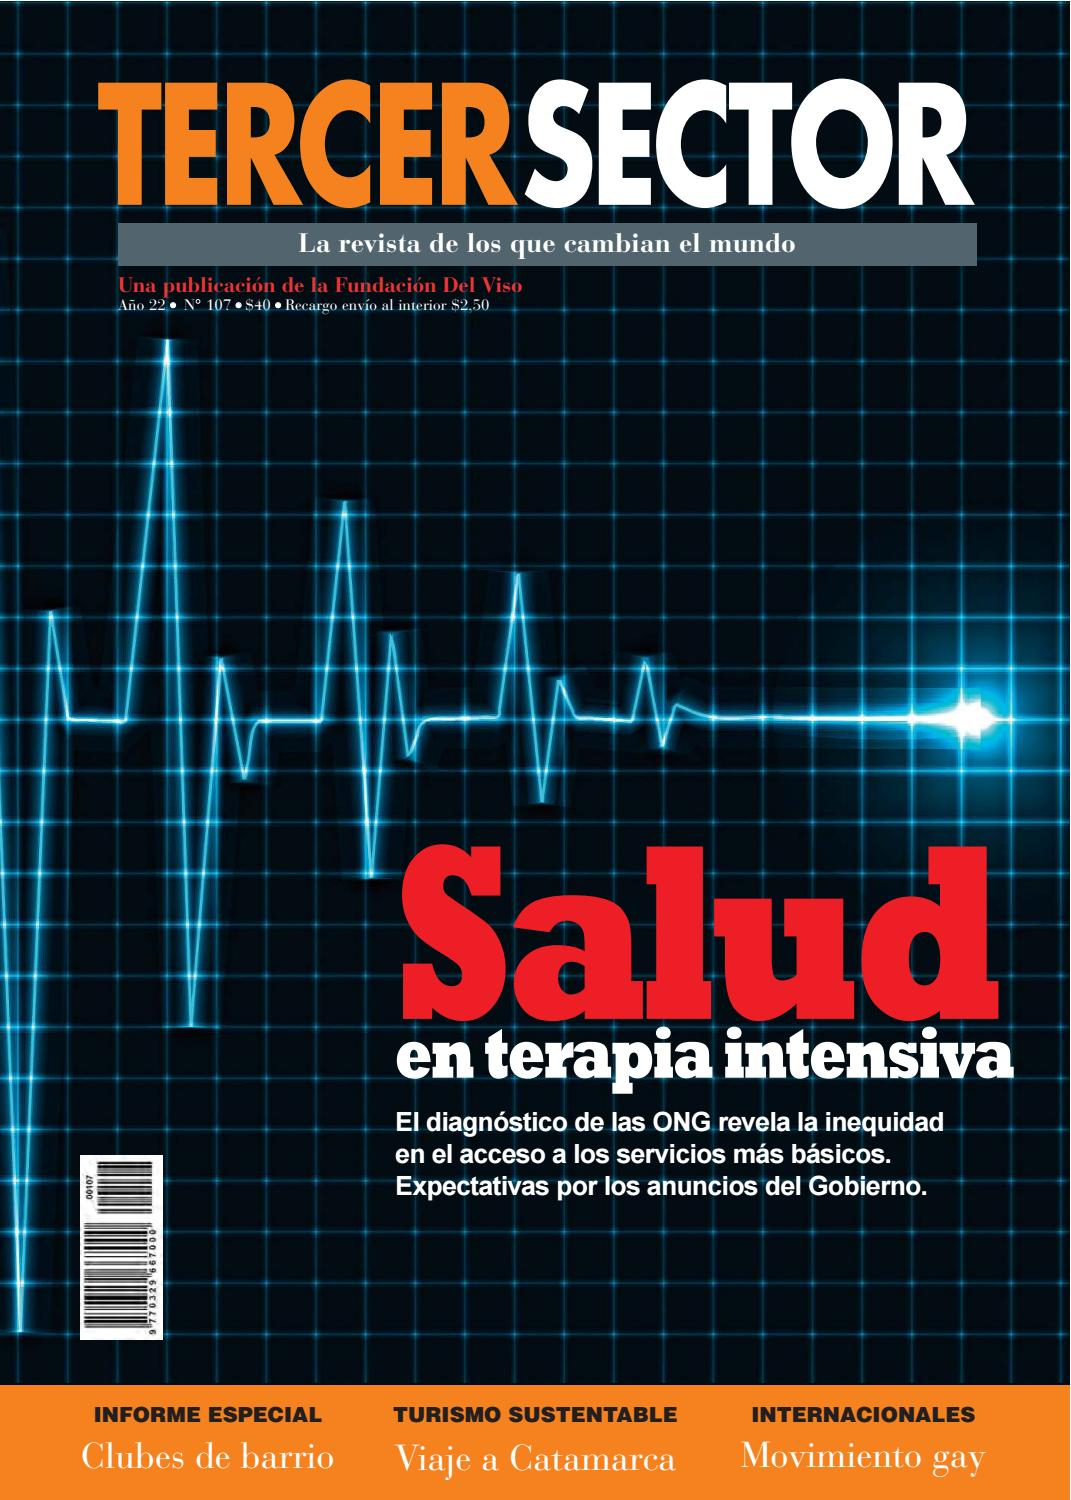 REVISTA TERCER SECTOR #107 by Tercer Sector - issuu